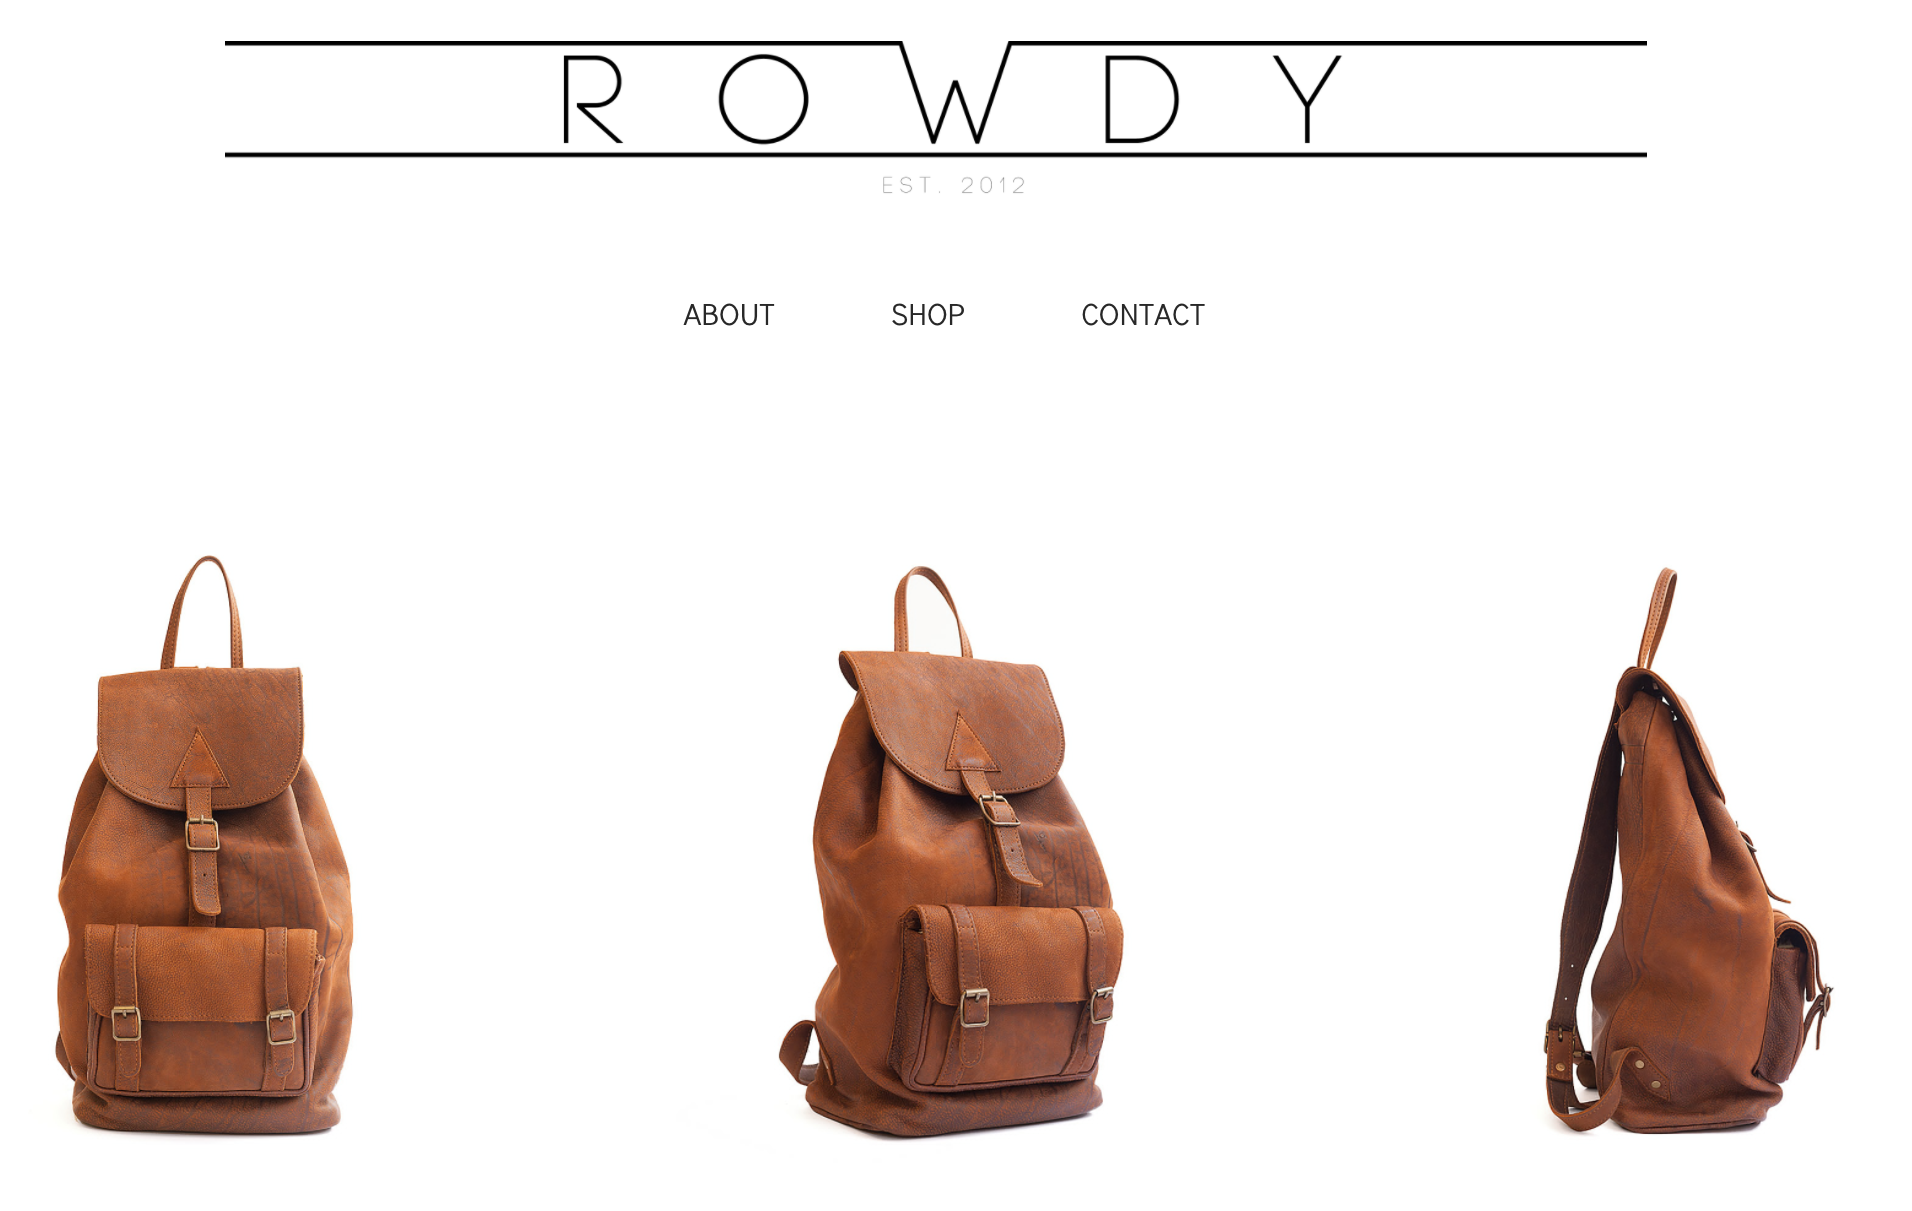 Rowdy Leather Bags